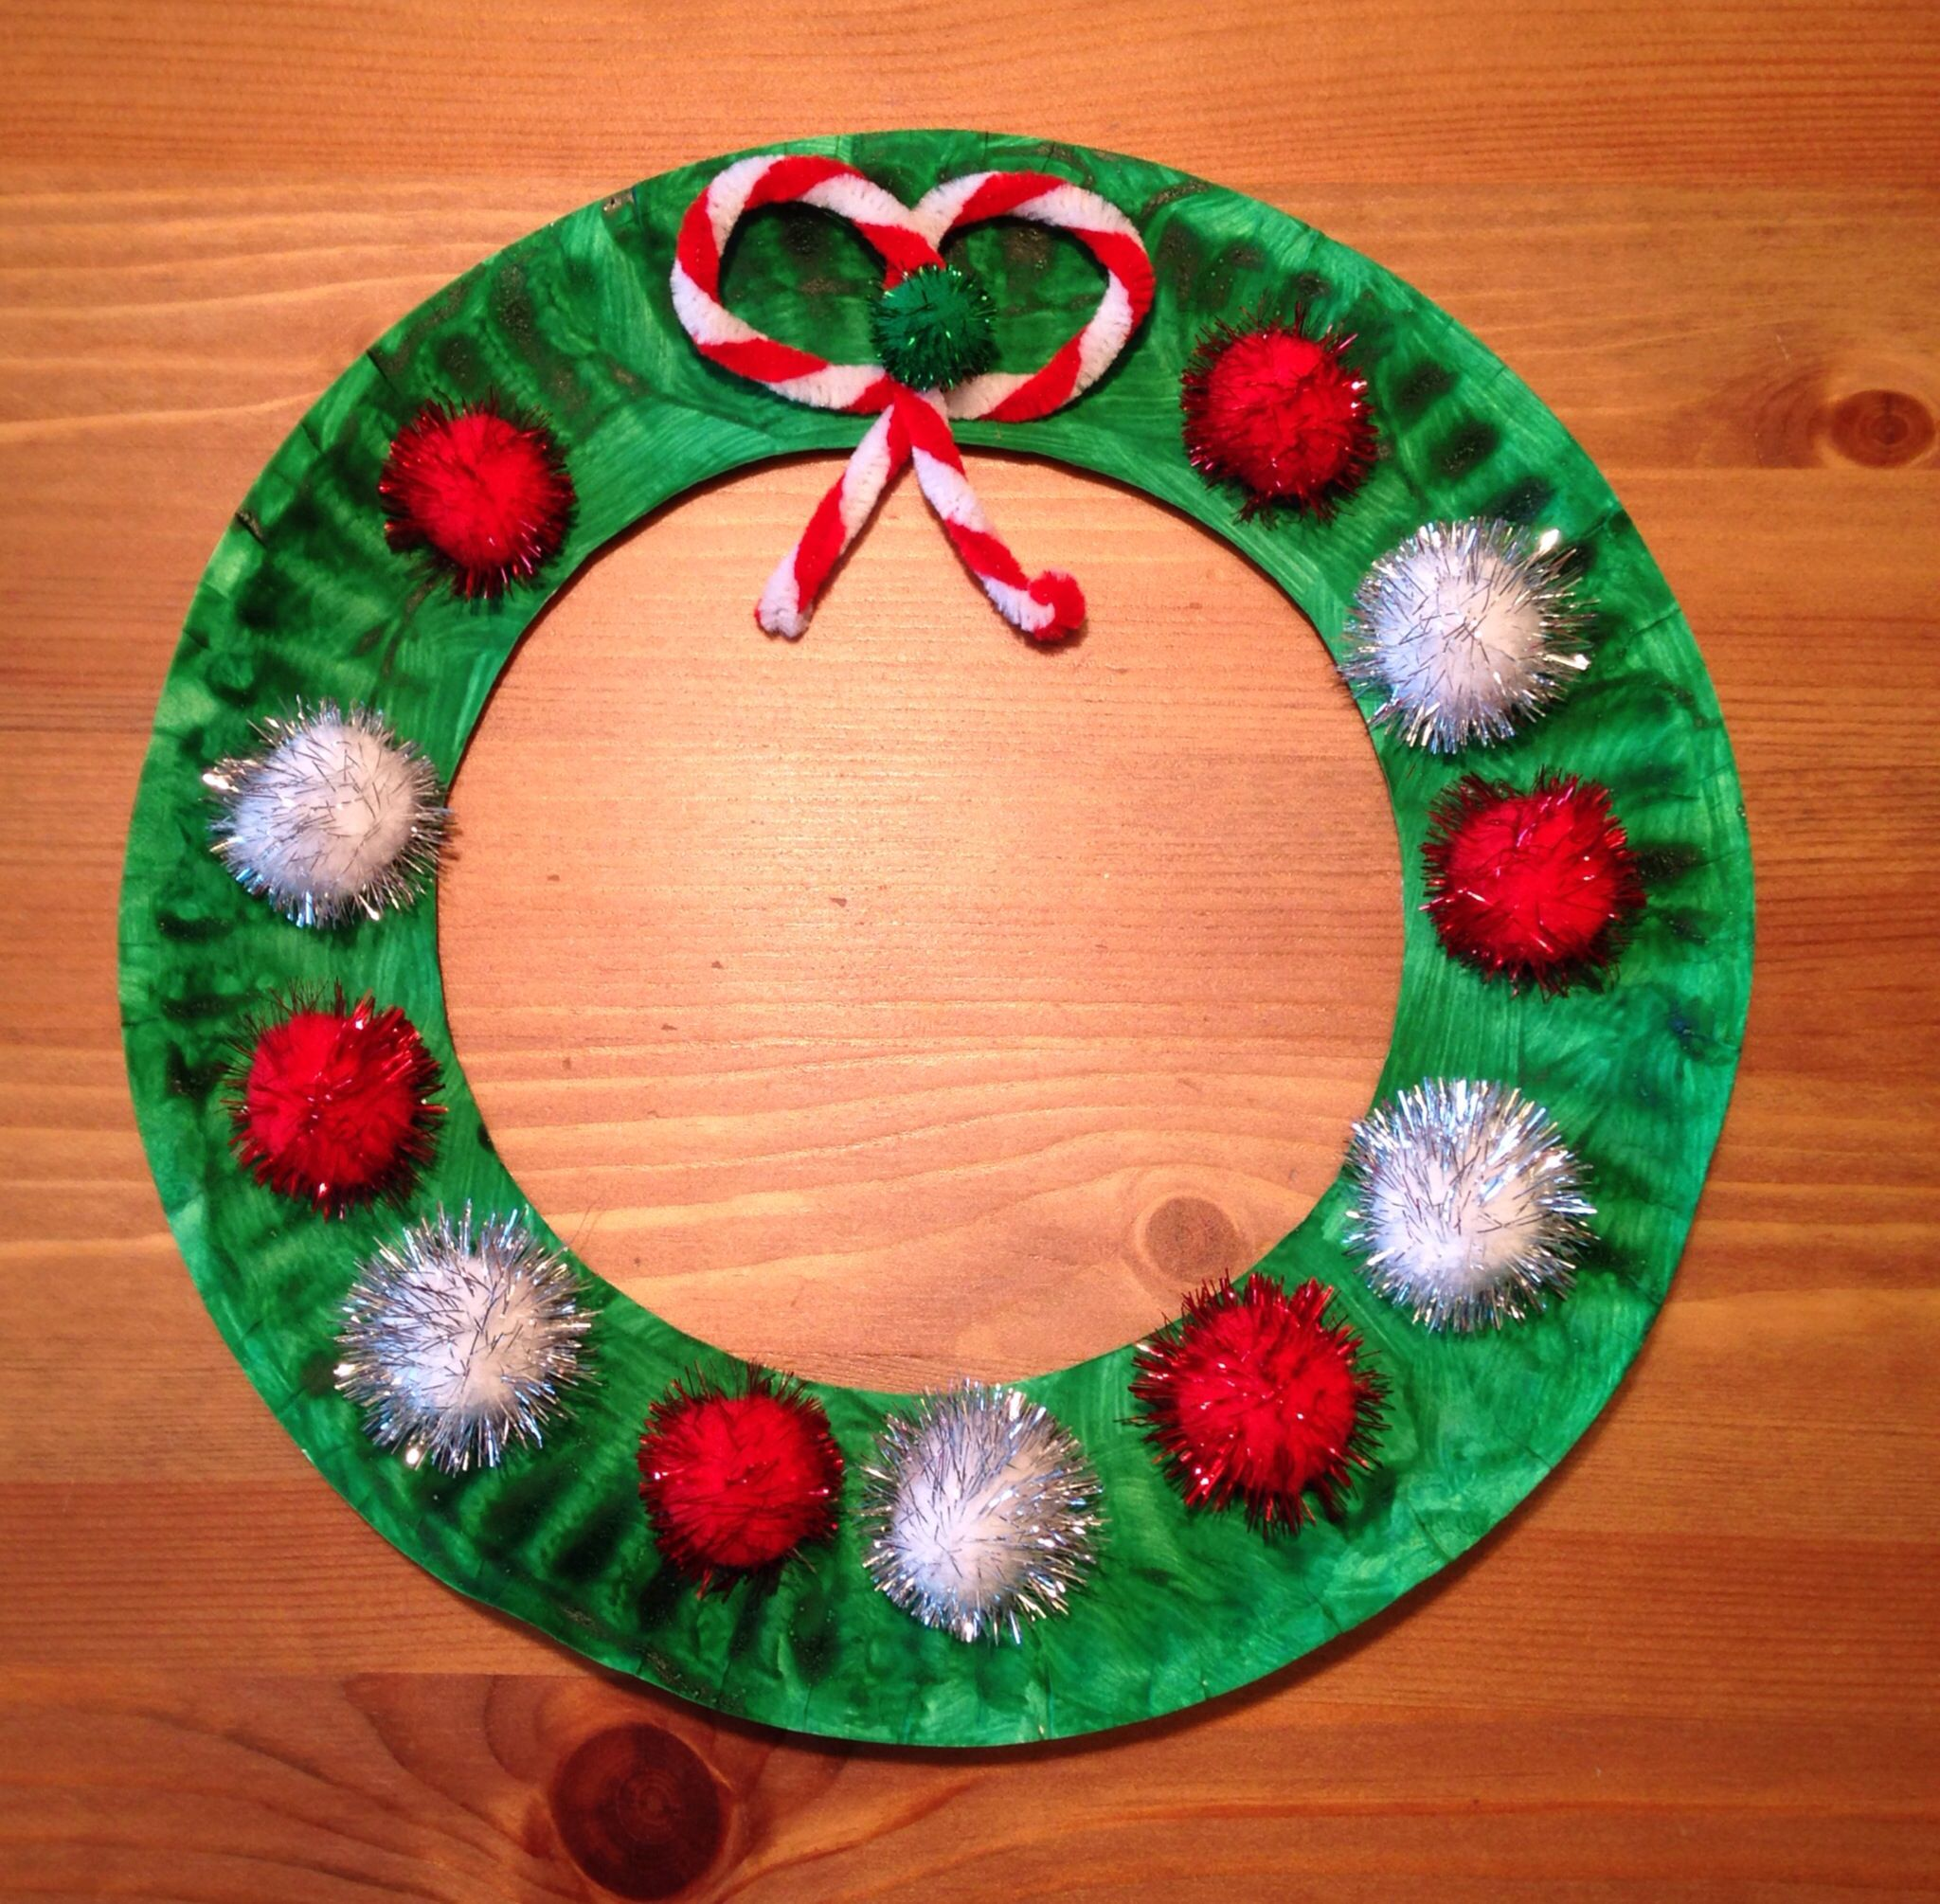 24 Christmas Gift Ideas Preschool Christmas Crafts Christmas Wreath Craft Christmas Crafts For Kids